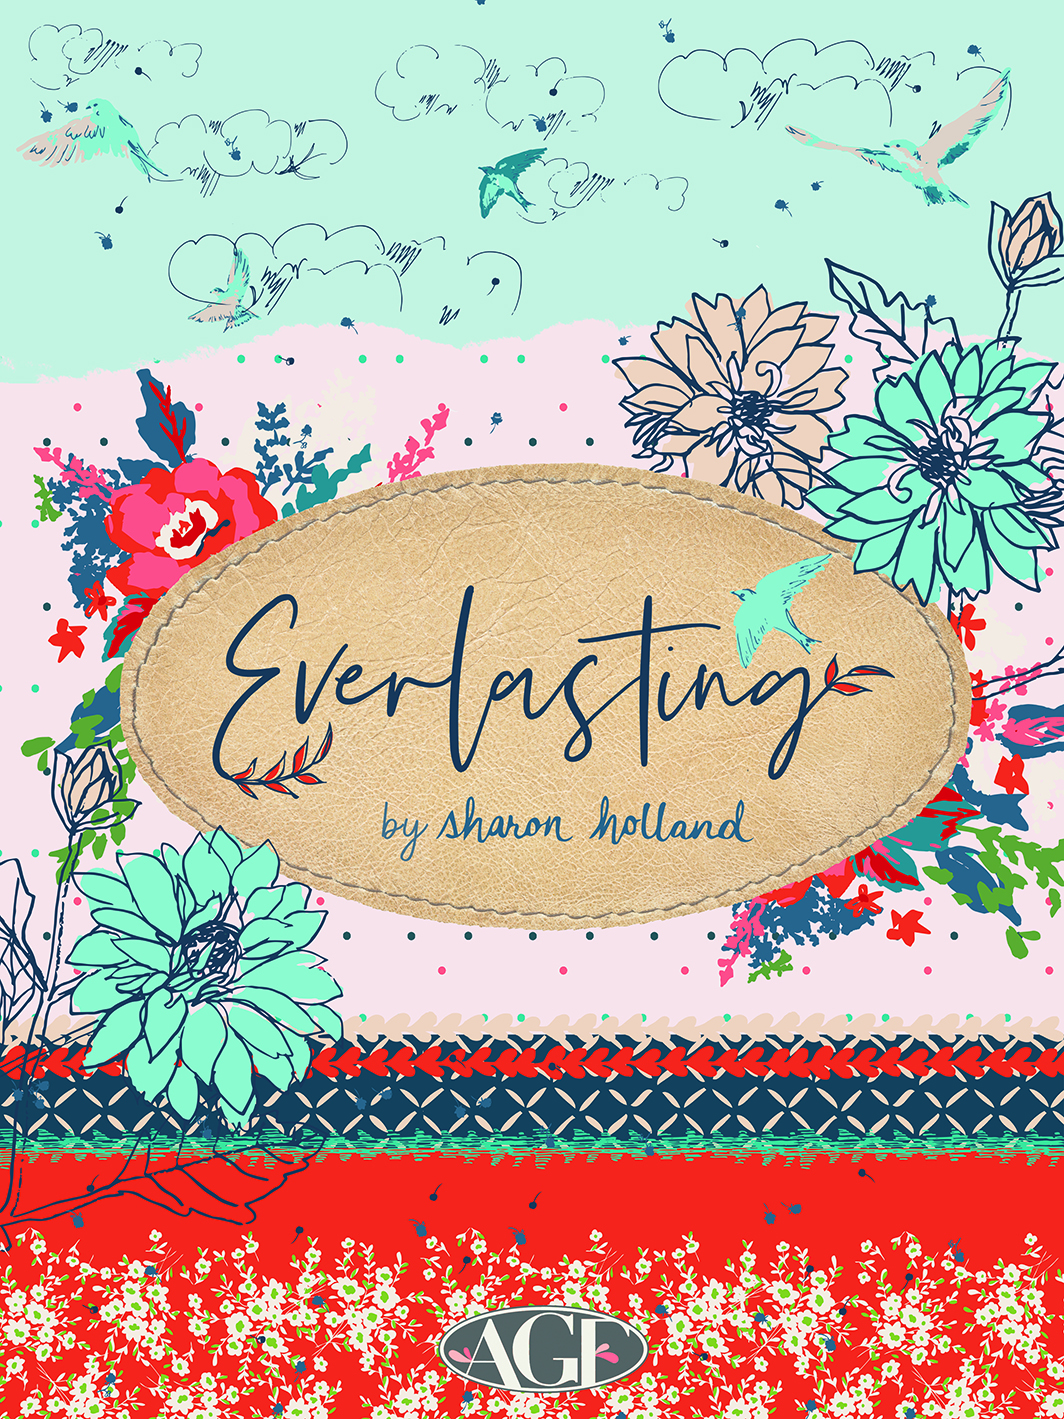 Everlasting_cover small.jpg